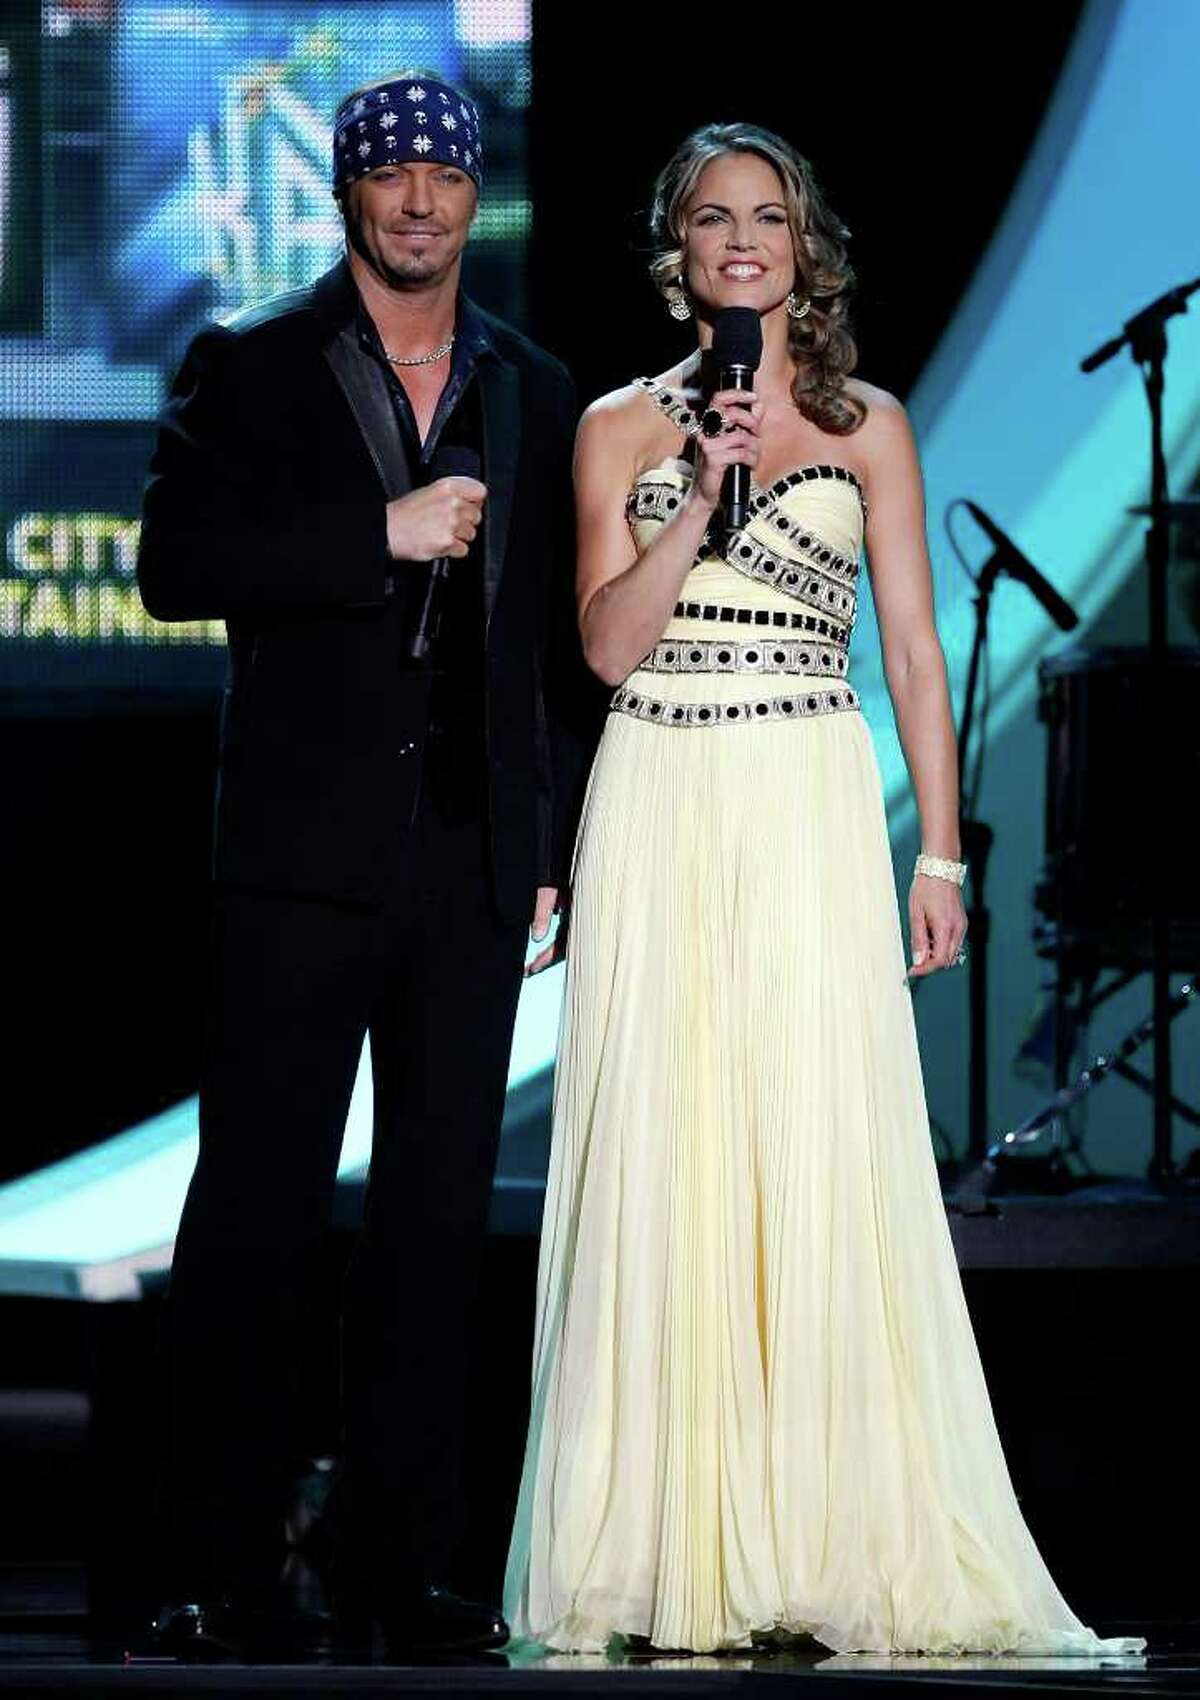 LAS VEGAS - AUGUST 23: Poison singer Bret Michaels (L) and NBC News anchor Natalie Morales host the 2010 Miss Universe Pageant at the Mandalay Bay Events Center August 23, 2010 in Las Vegas, Nevada. (Photo by Ethan Miller/Getty Images)